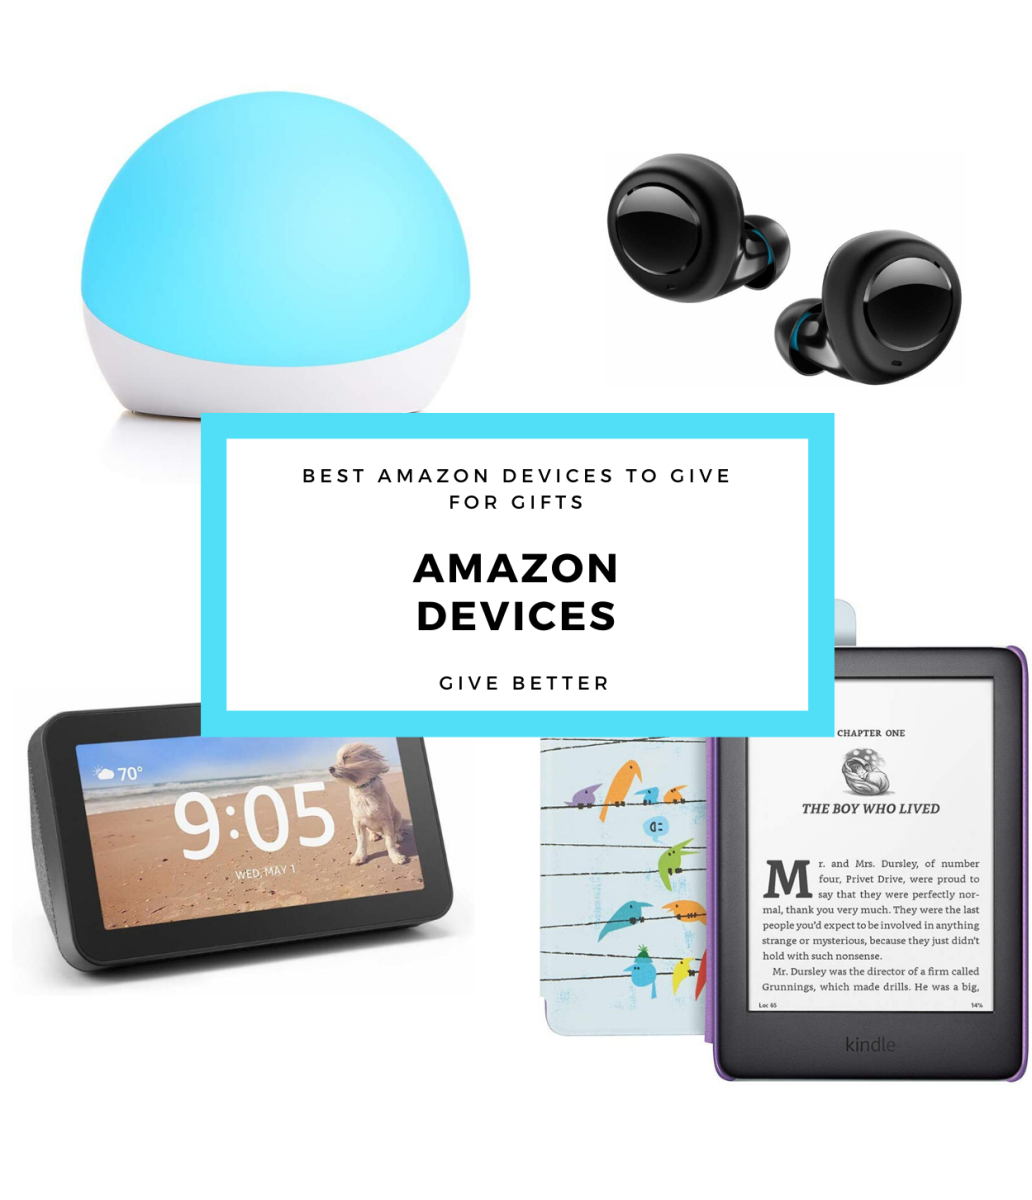 Best Amazon Devices to Give for Gifts